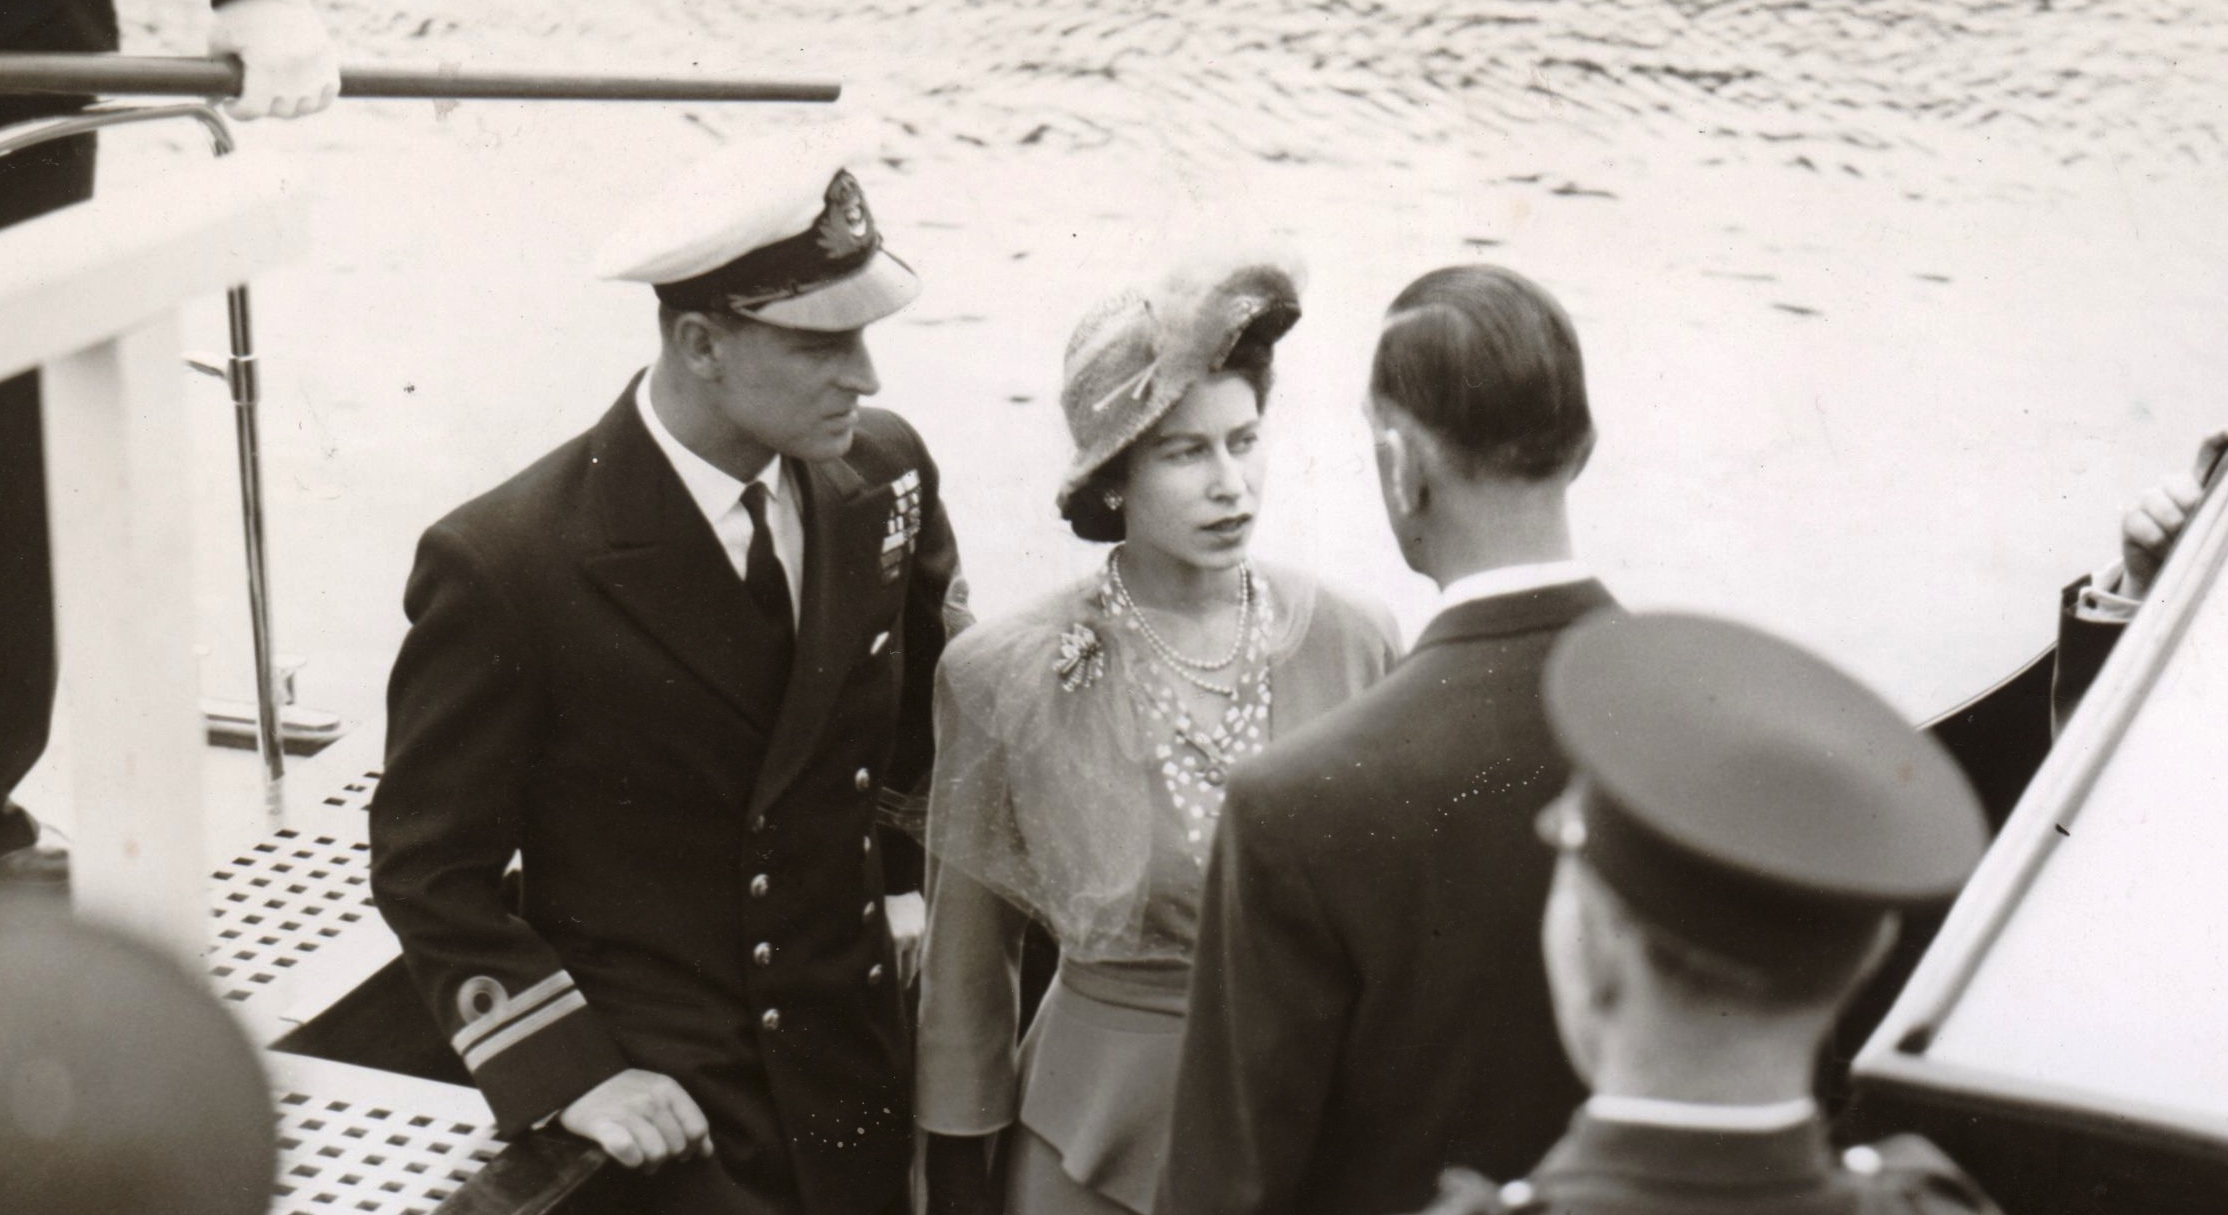 All life behind the back of the Queen of Great Britain - Philip, Duke of Edinburgh